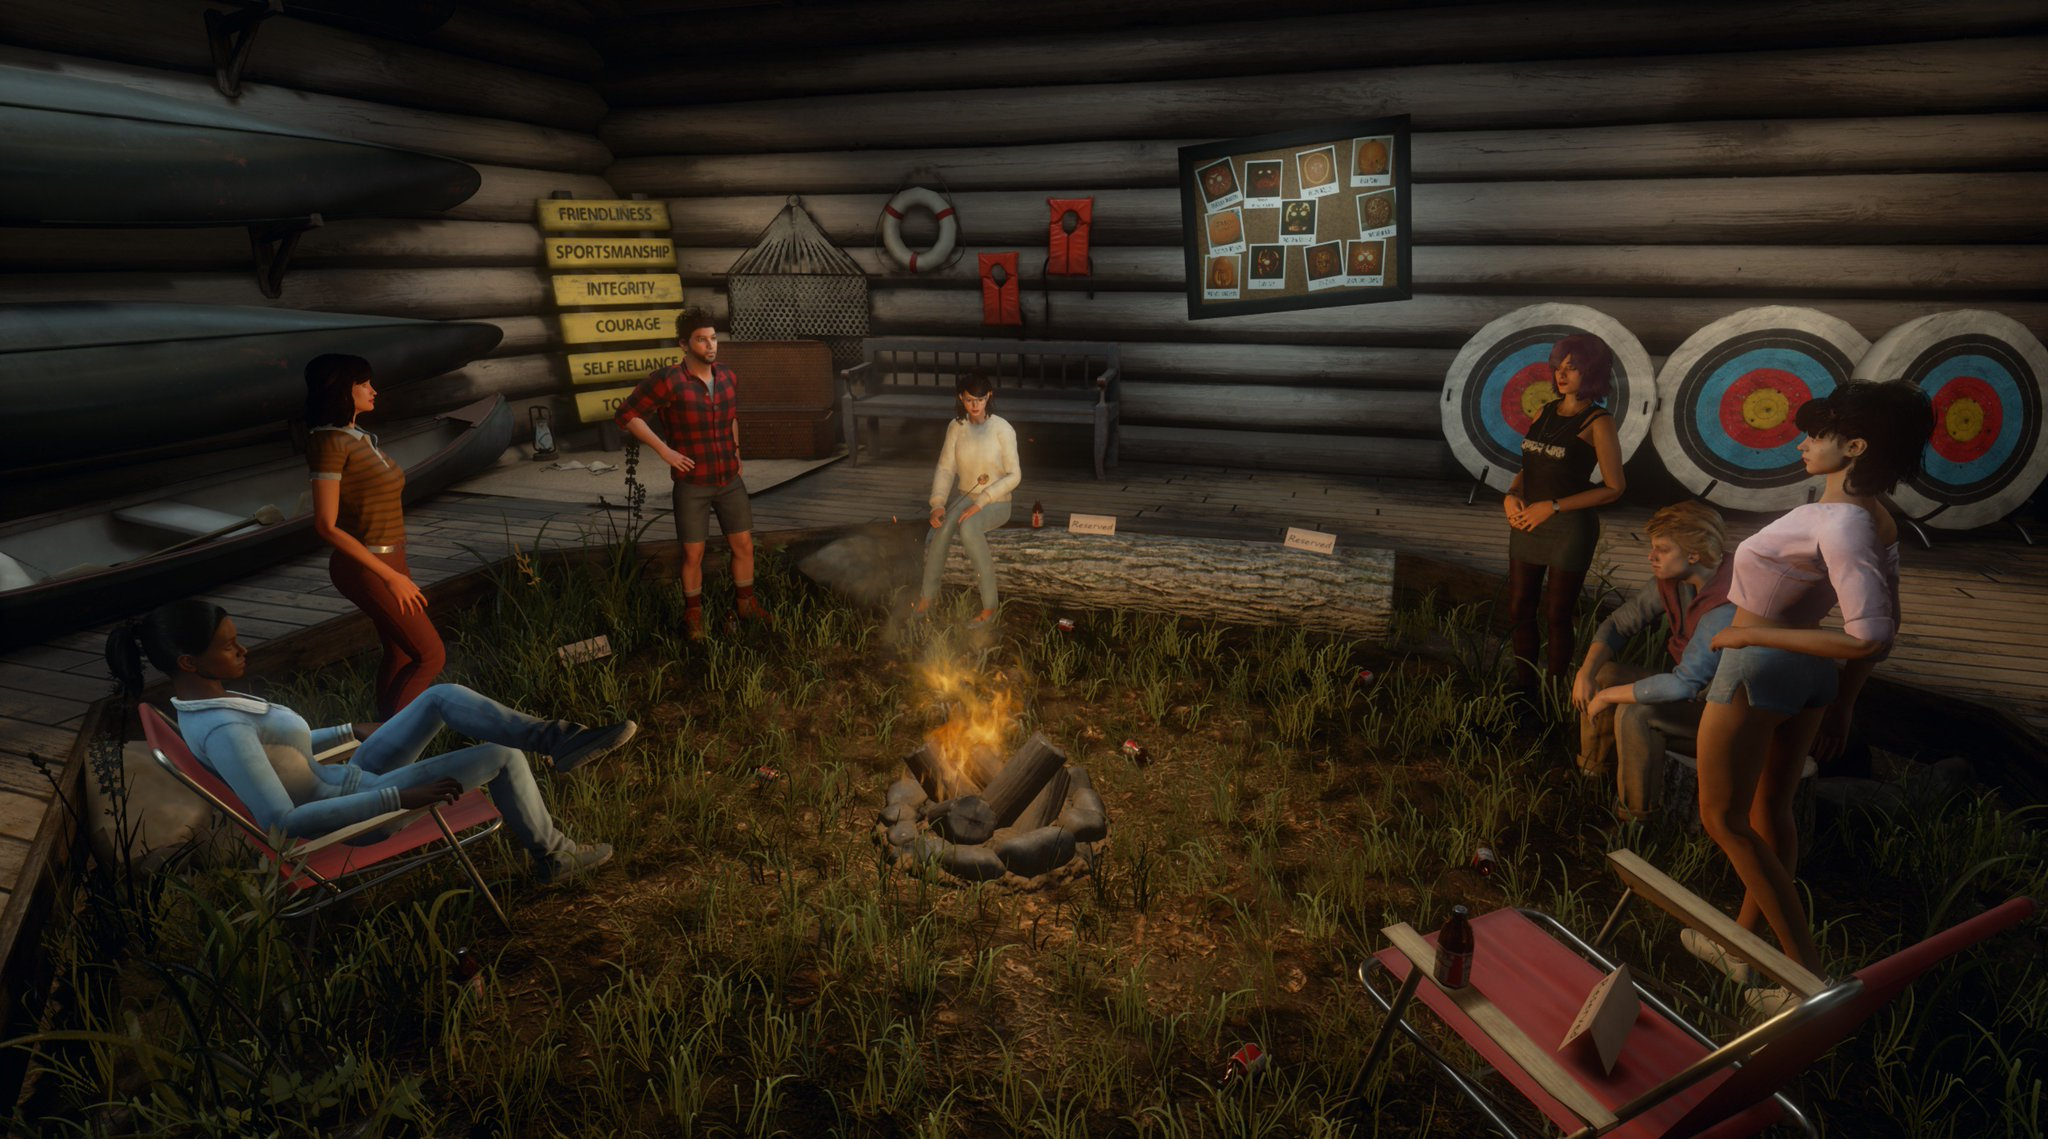 FRIDAY THE 13TH ONLINE